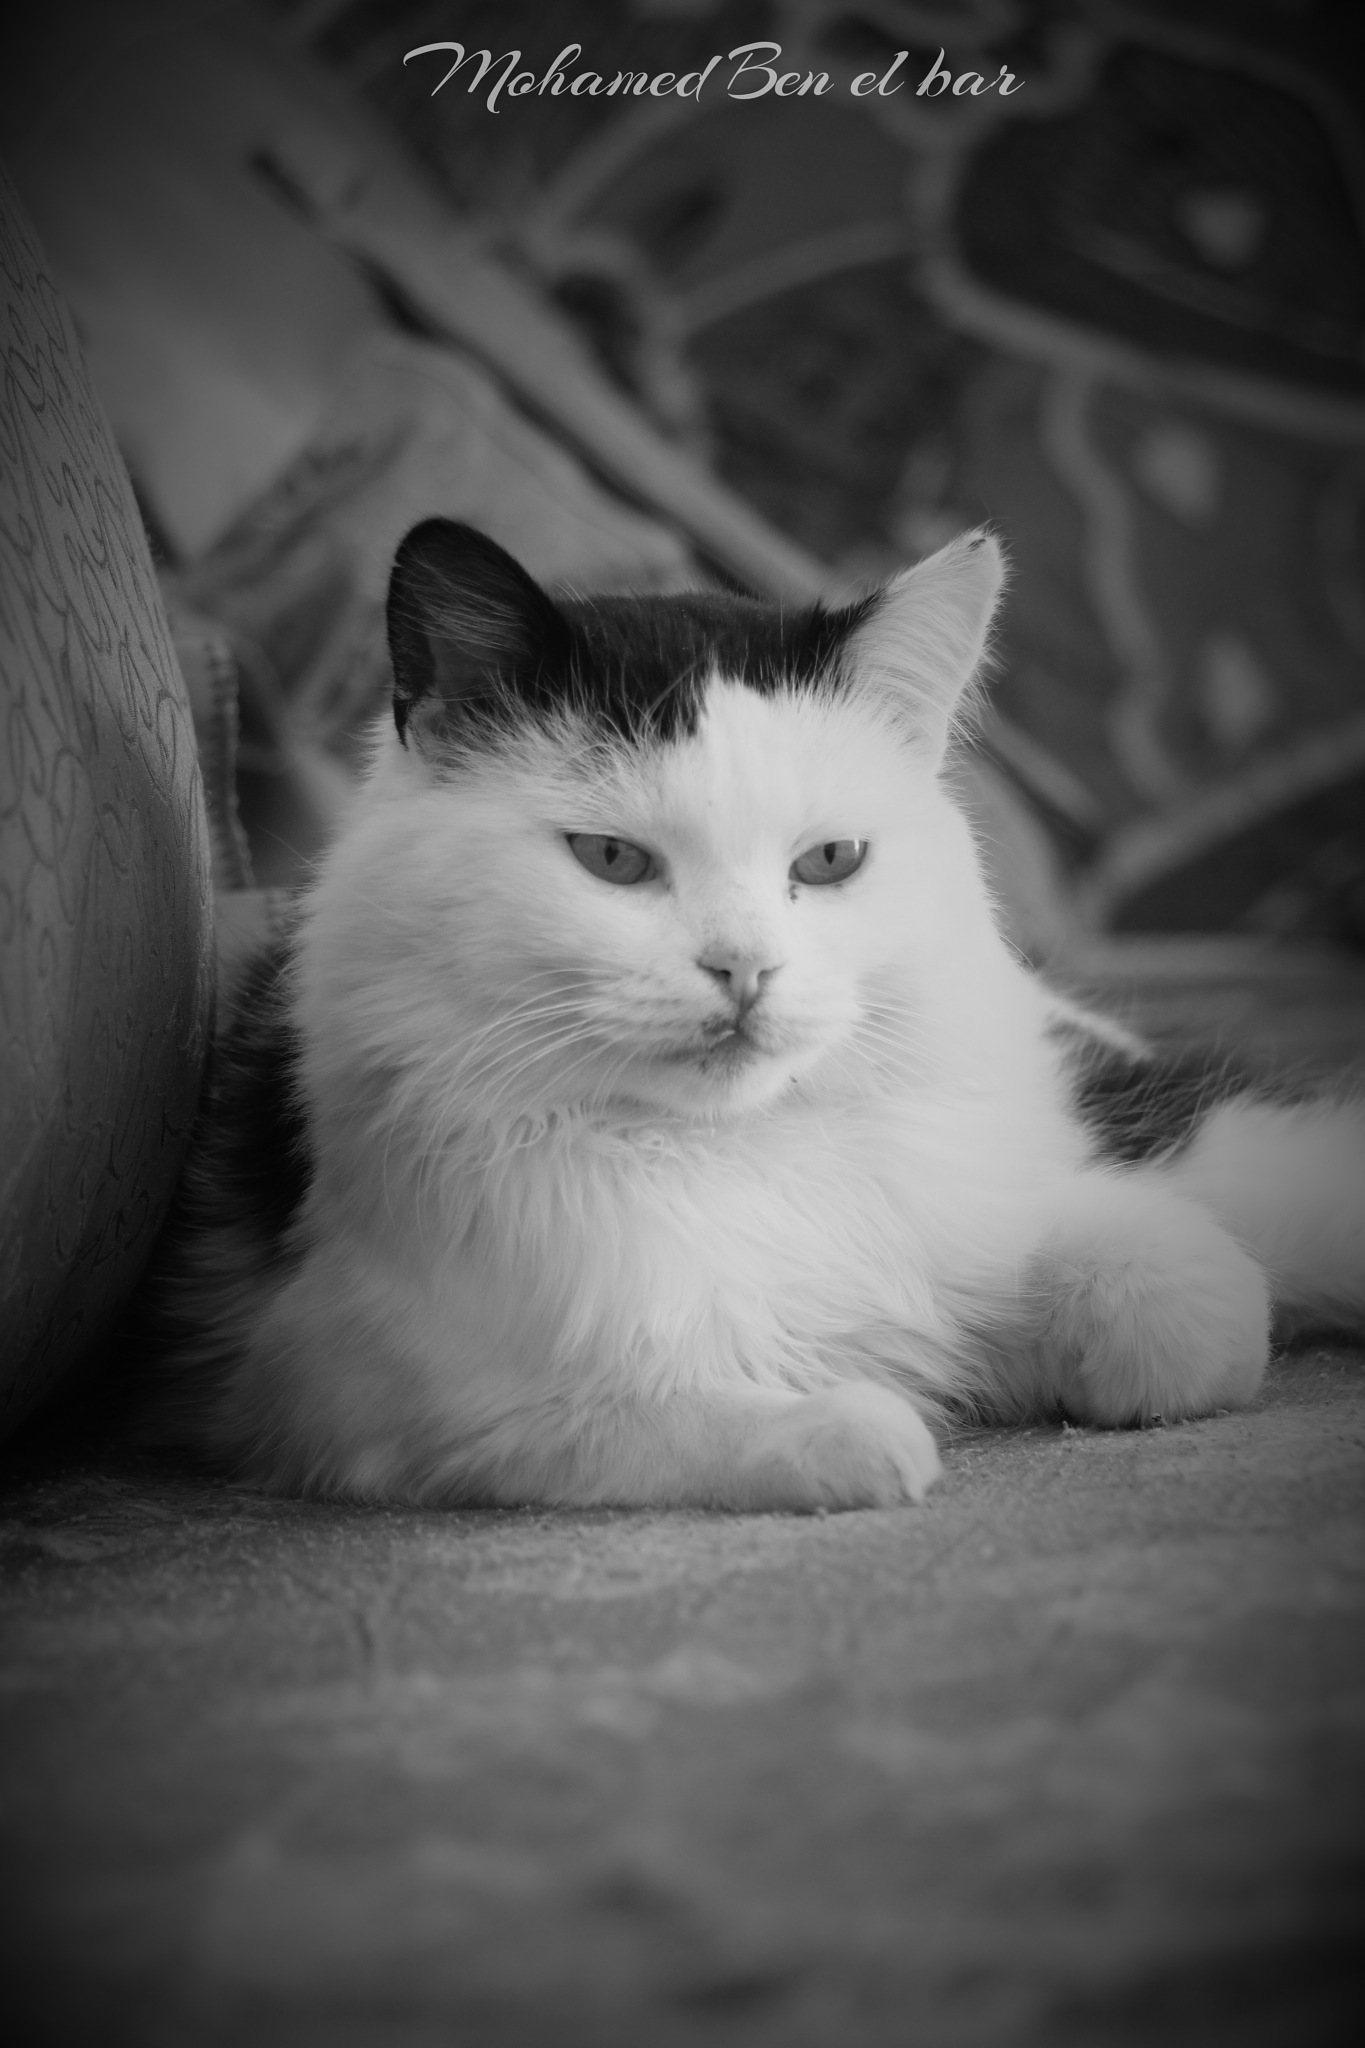 My cat by Mohamed Ben El Bar